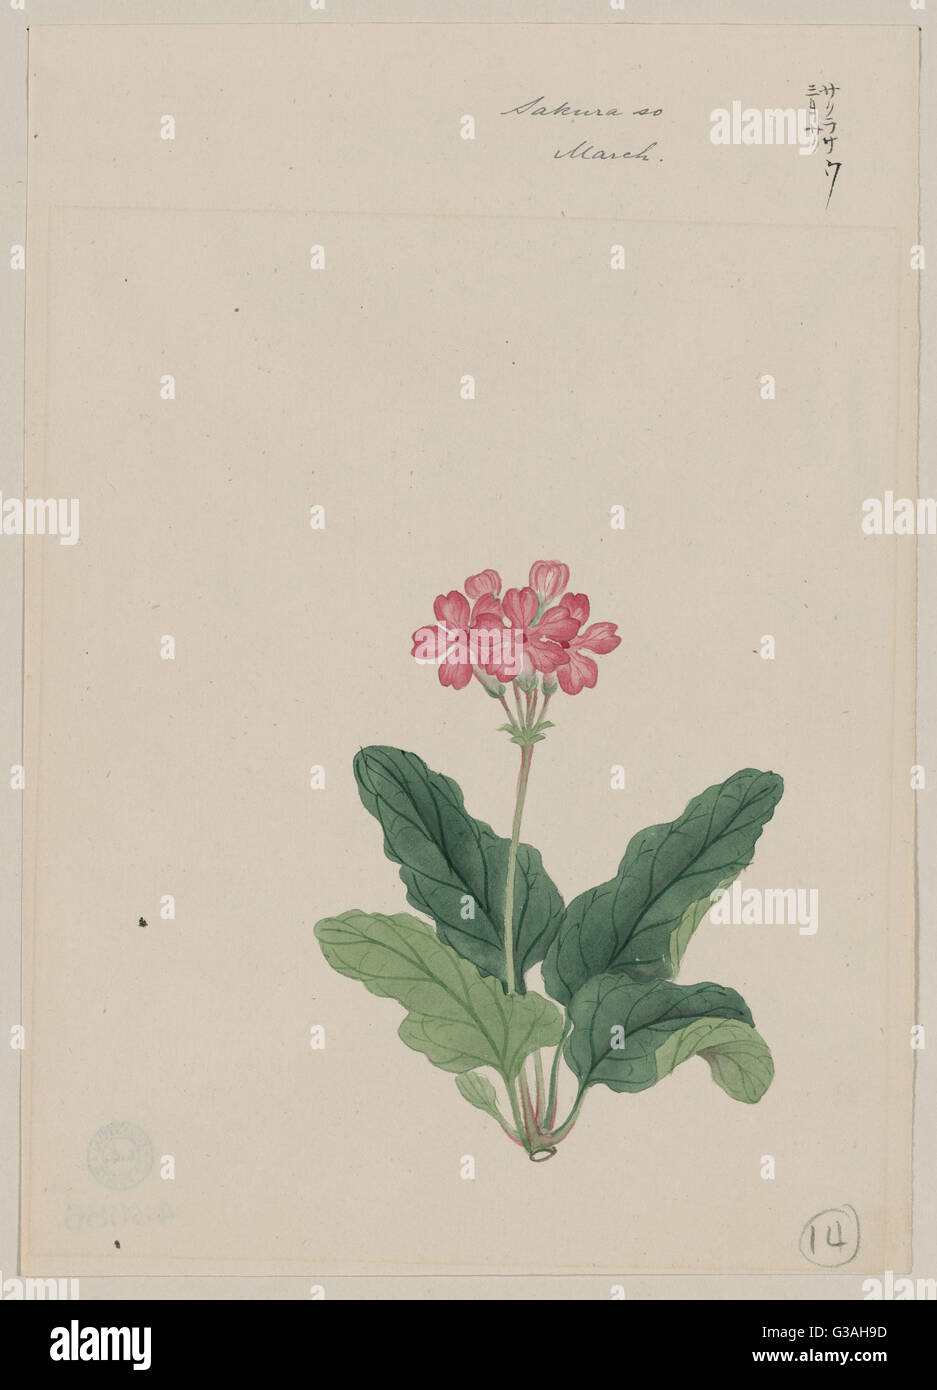 Sakura sou - March. Drawing shows pink blossoms on a stem and leaves of the primrose. Date 187-. - Stock Image